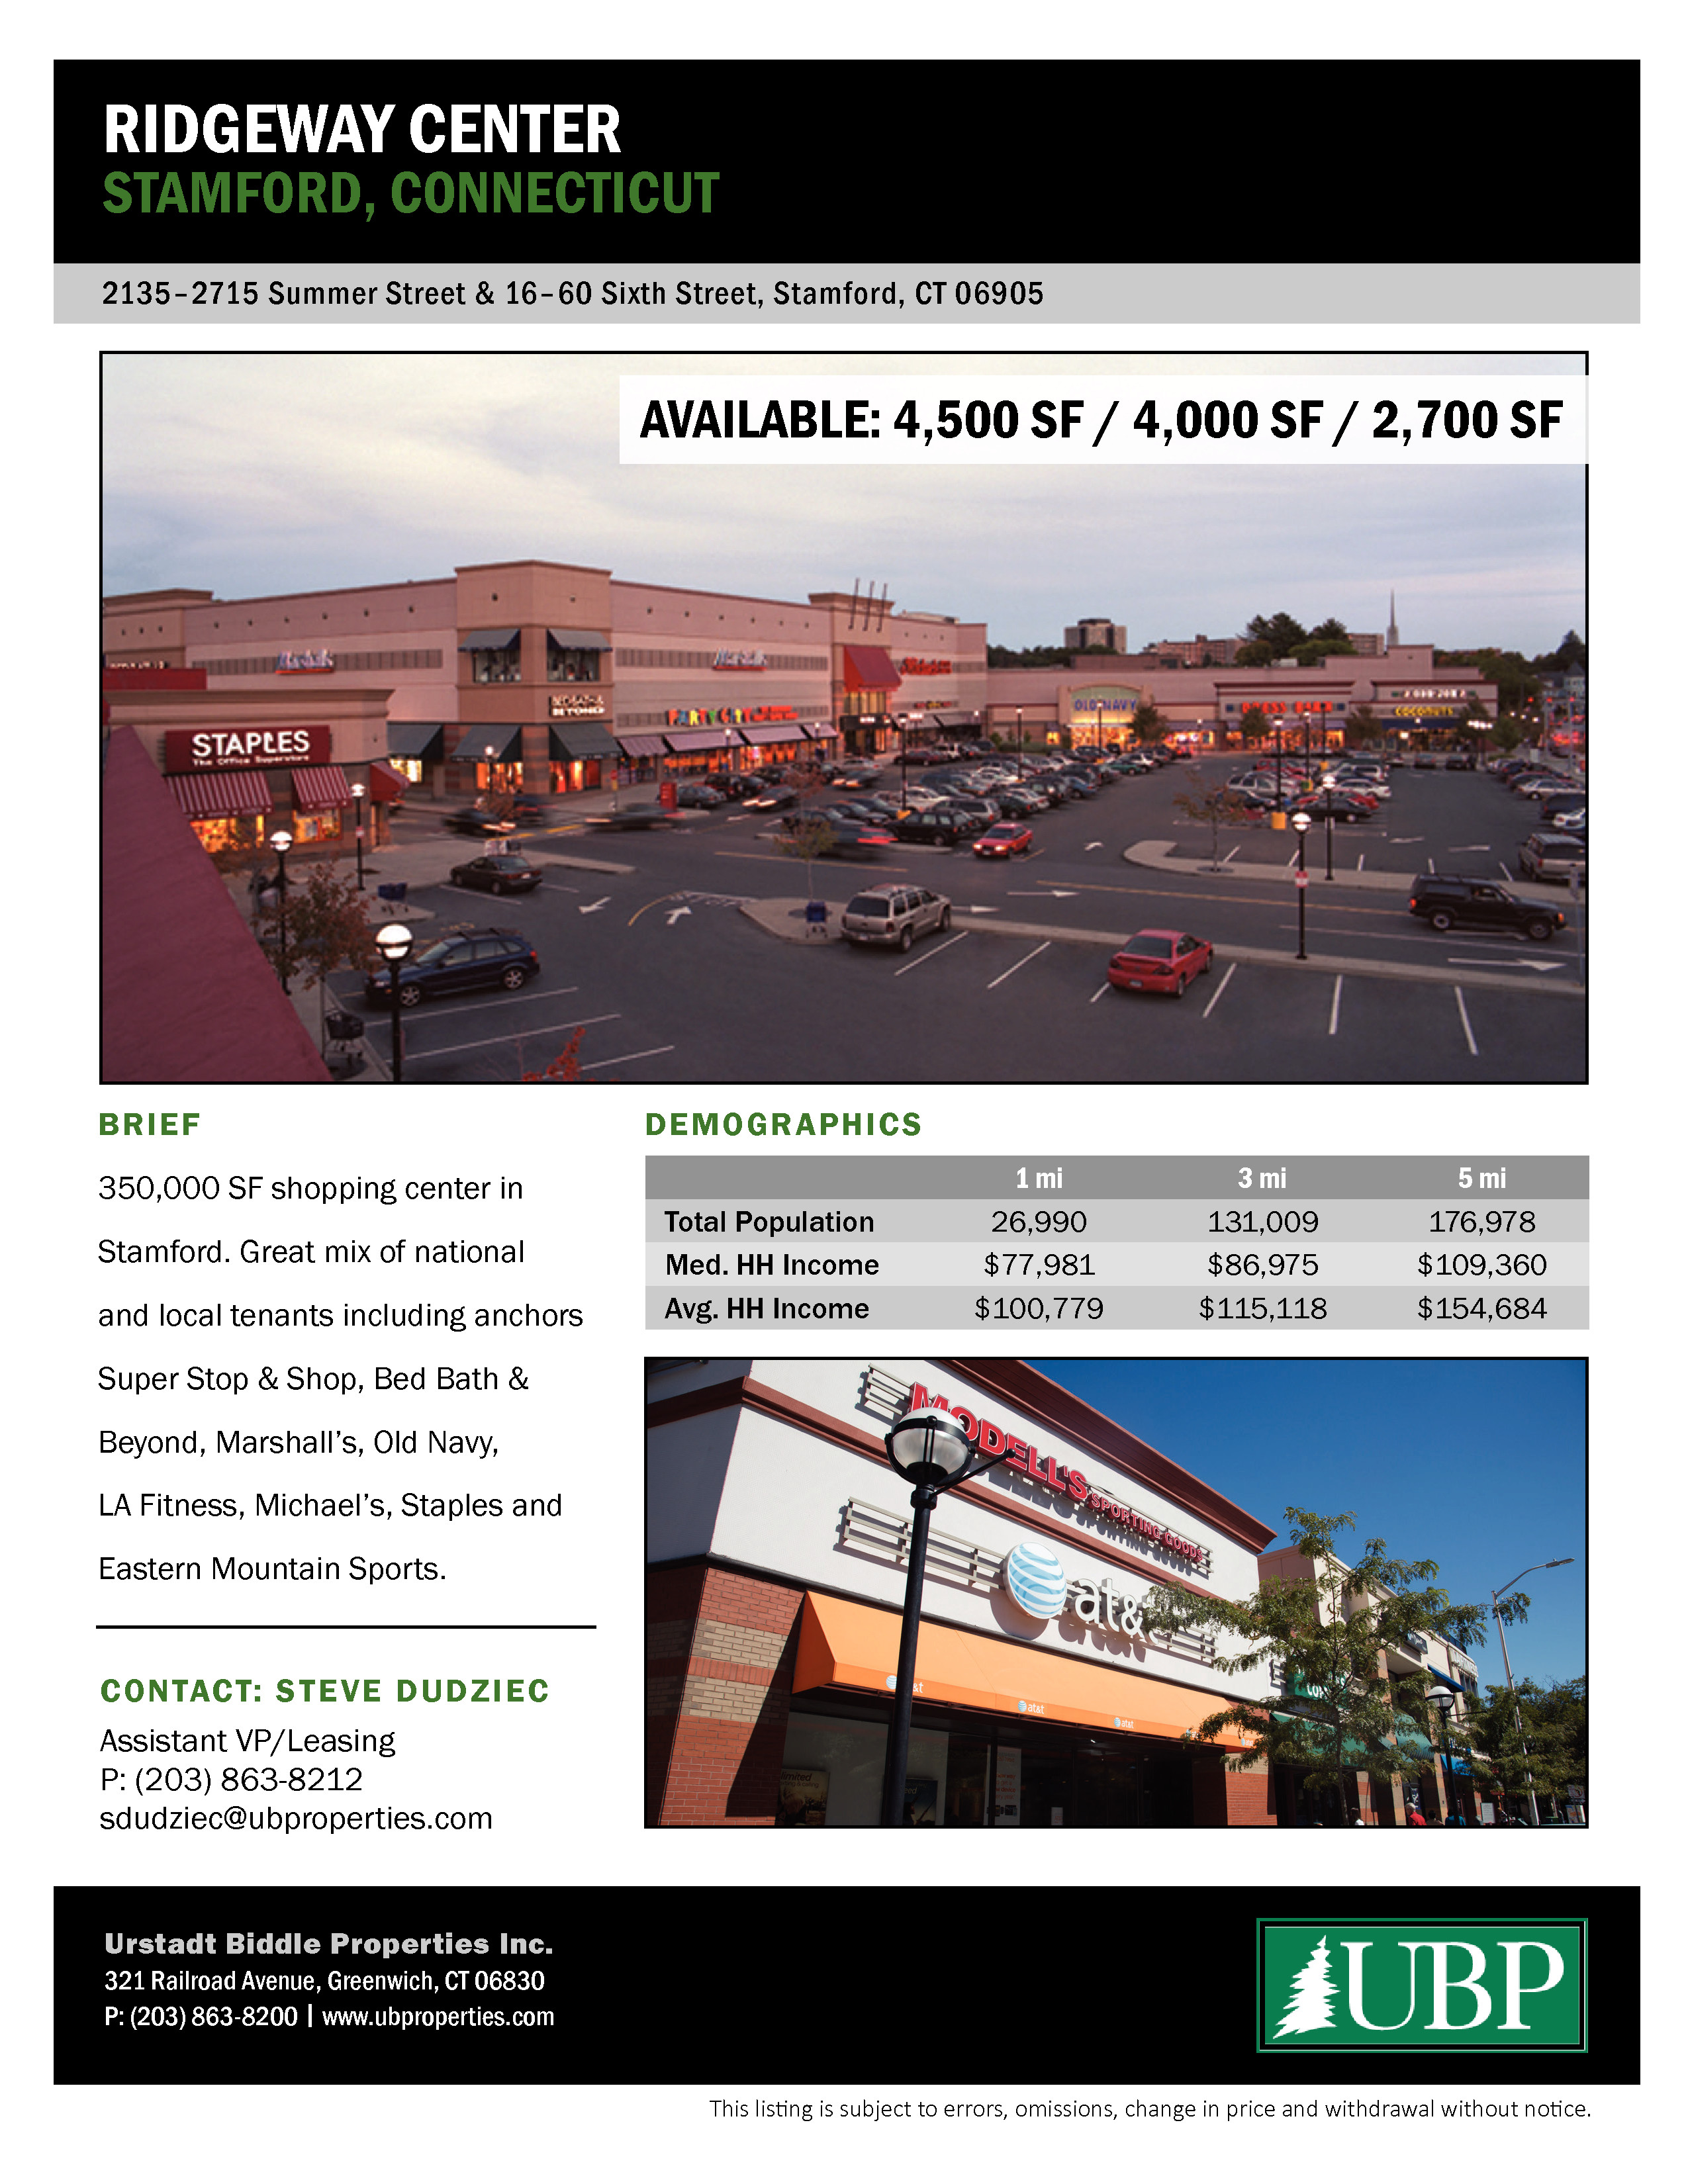 Ridgeway Shopping Center Management - Stamford, United States